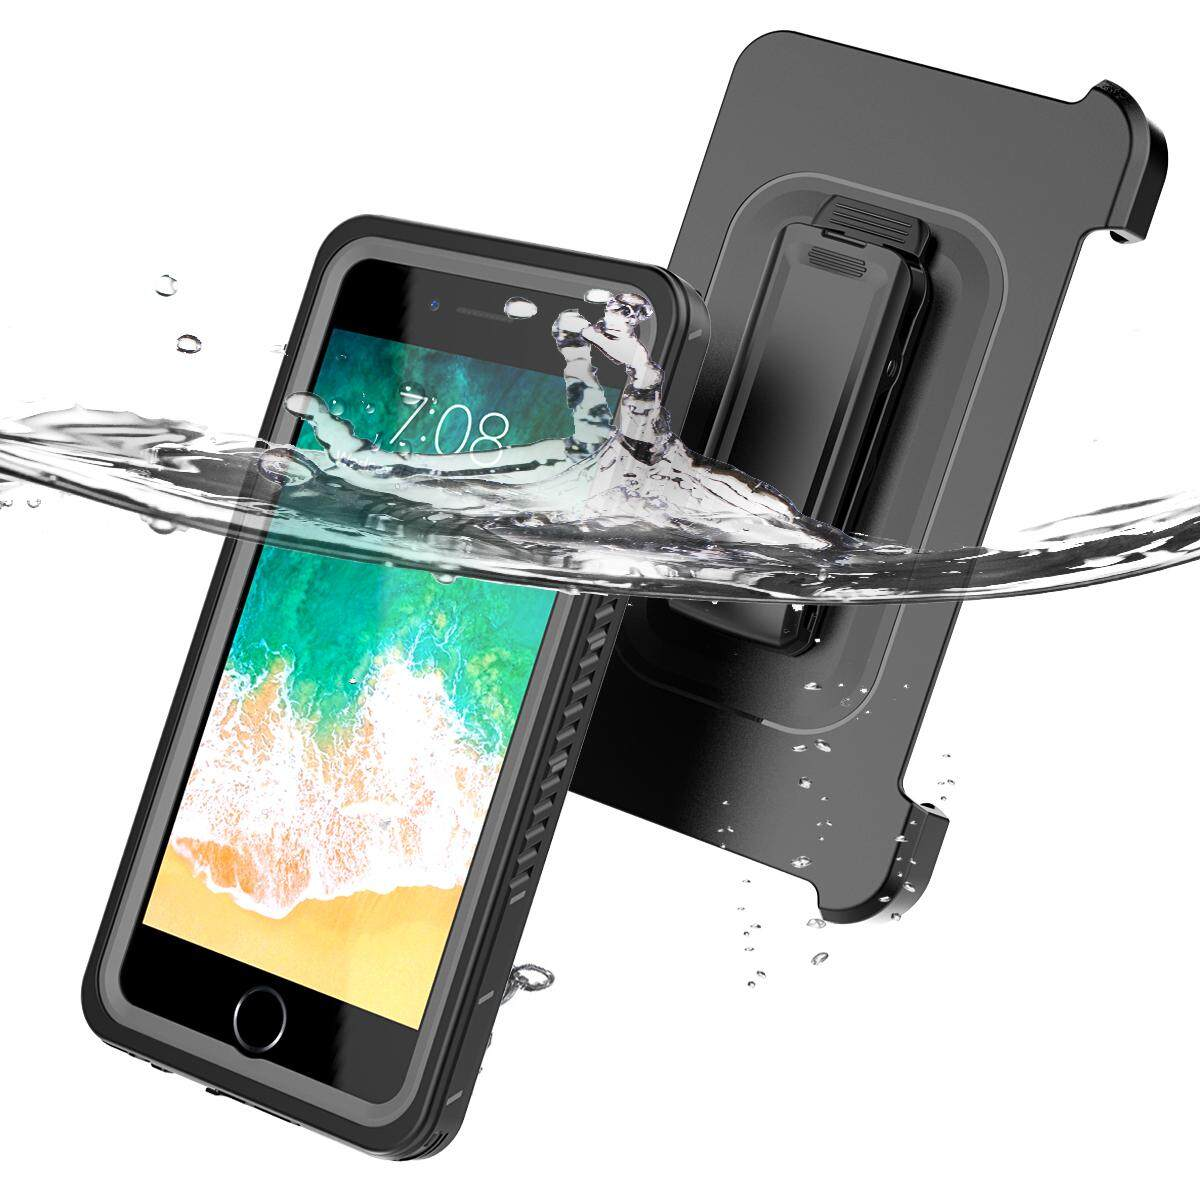 Fitur Moonmini Case Cover For Iphone 7 Plus 8 360 Totu Design Galaxy S8 Soft Series Tpu Ultra Thin Clear Transparan Detail Gambar Degree Protection Waterproof Dustproof Shockproof Back Kickstand And